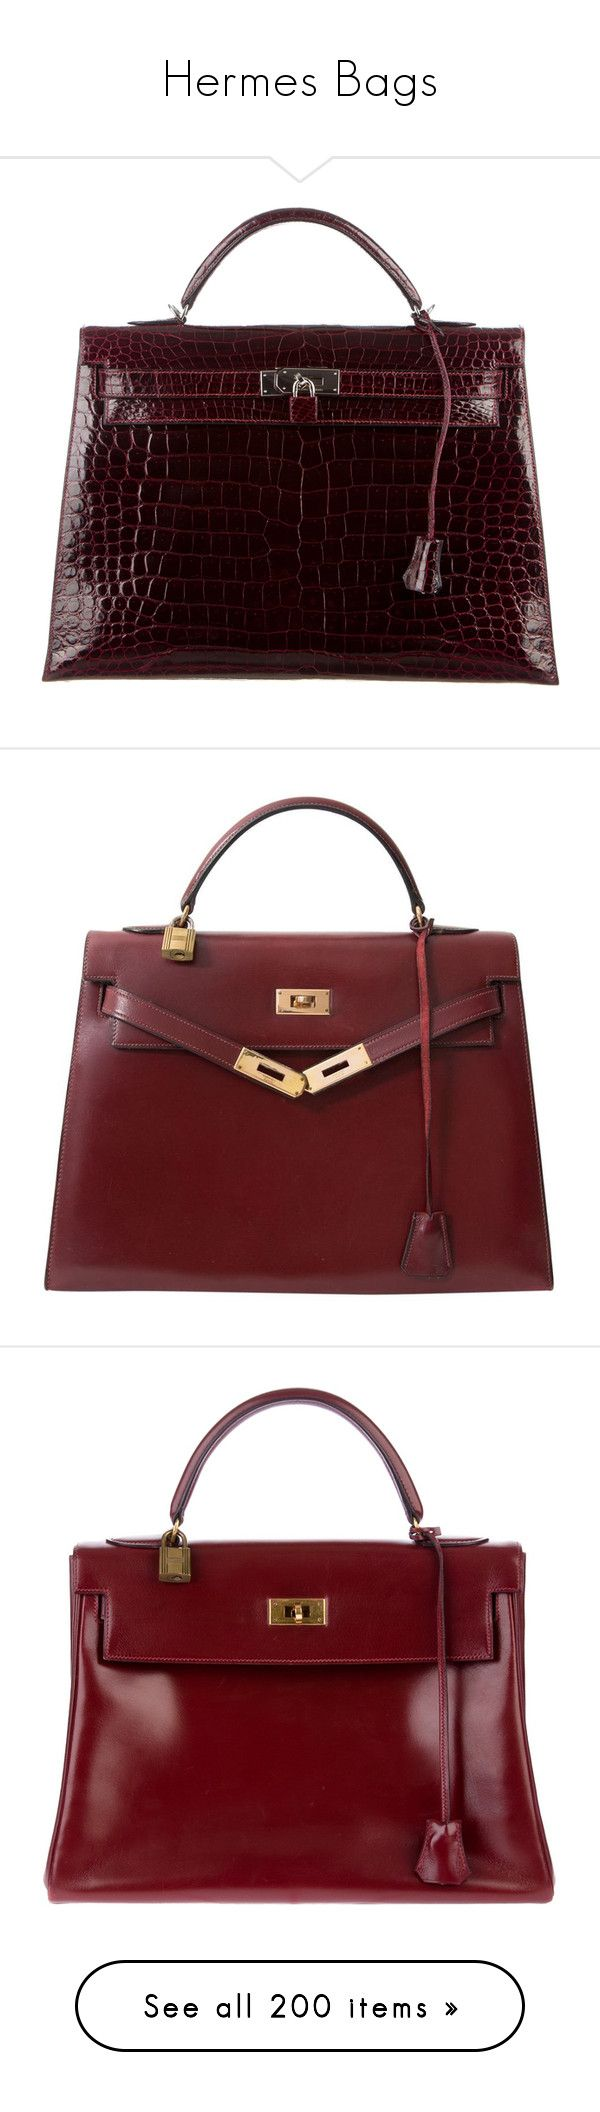 """""""Hermes Bags"""" by fufuun ❤ liked on Polyvore featuring bags, handbags, burgundy, burgundy handbags, hand bags, man bag, croc handbags, crocodile handbags, bolsas and purses"""